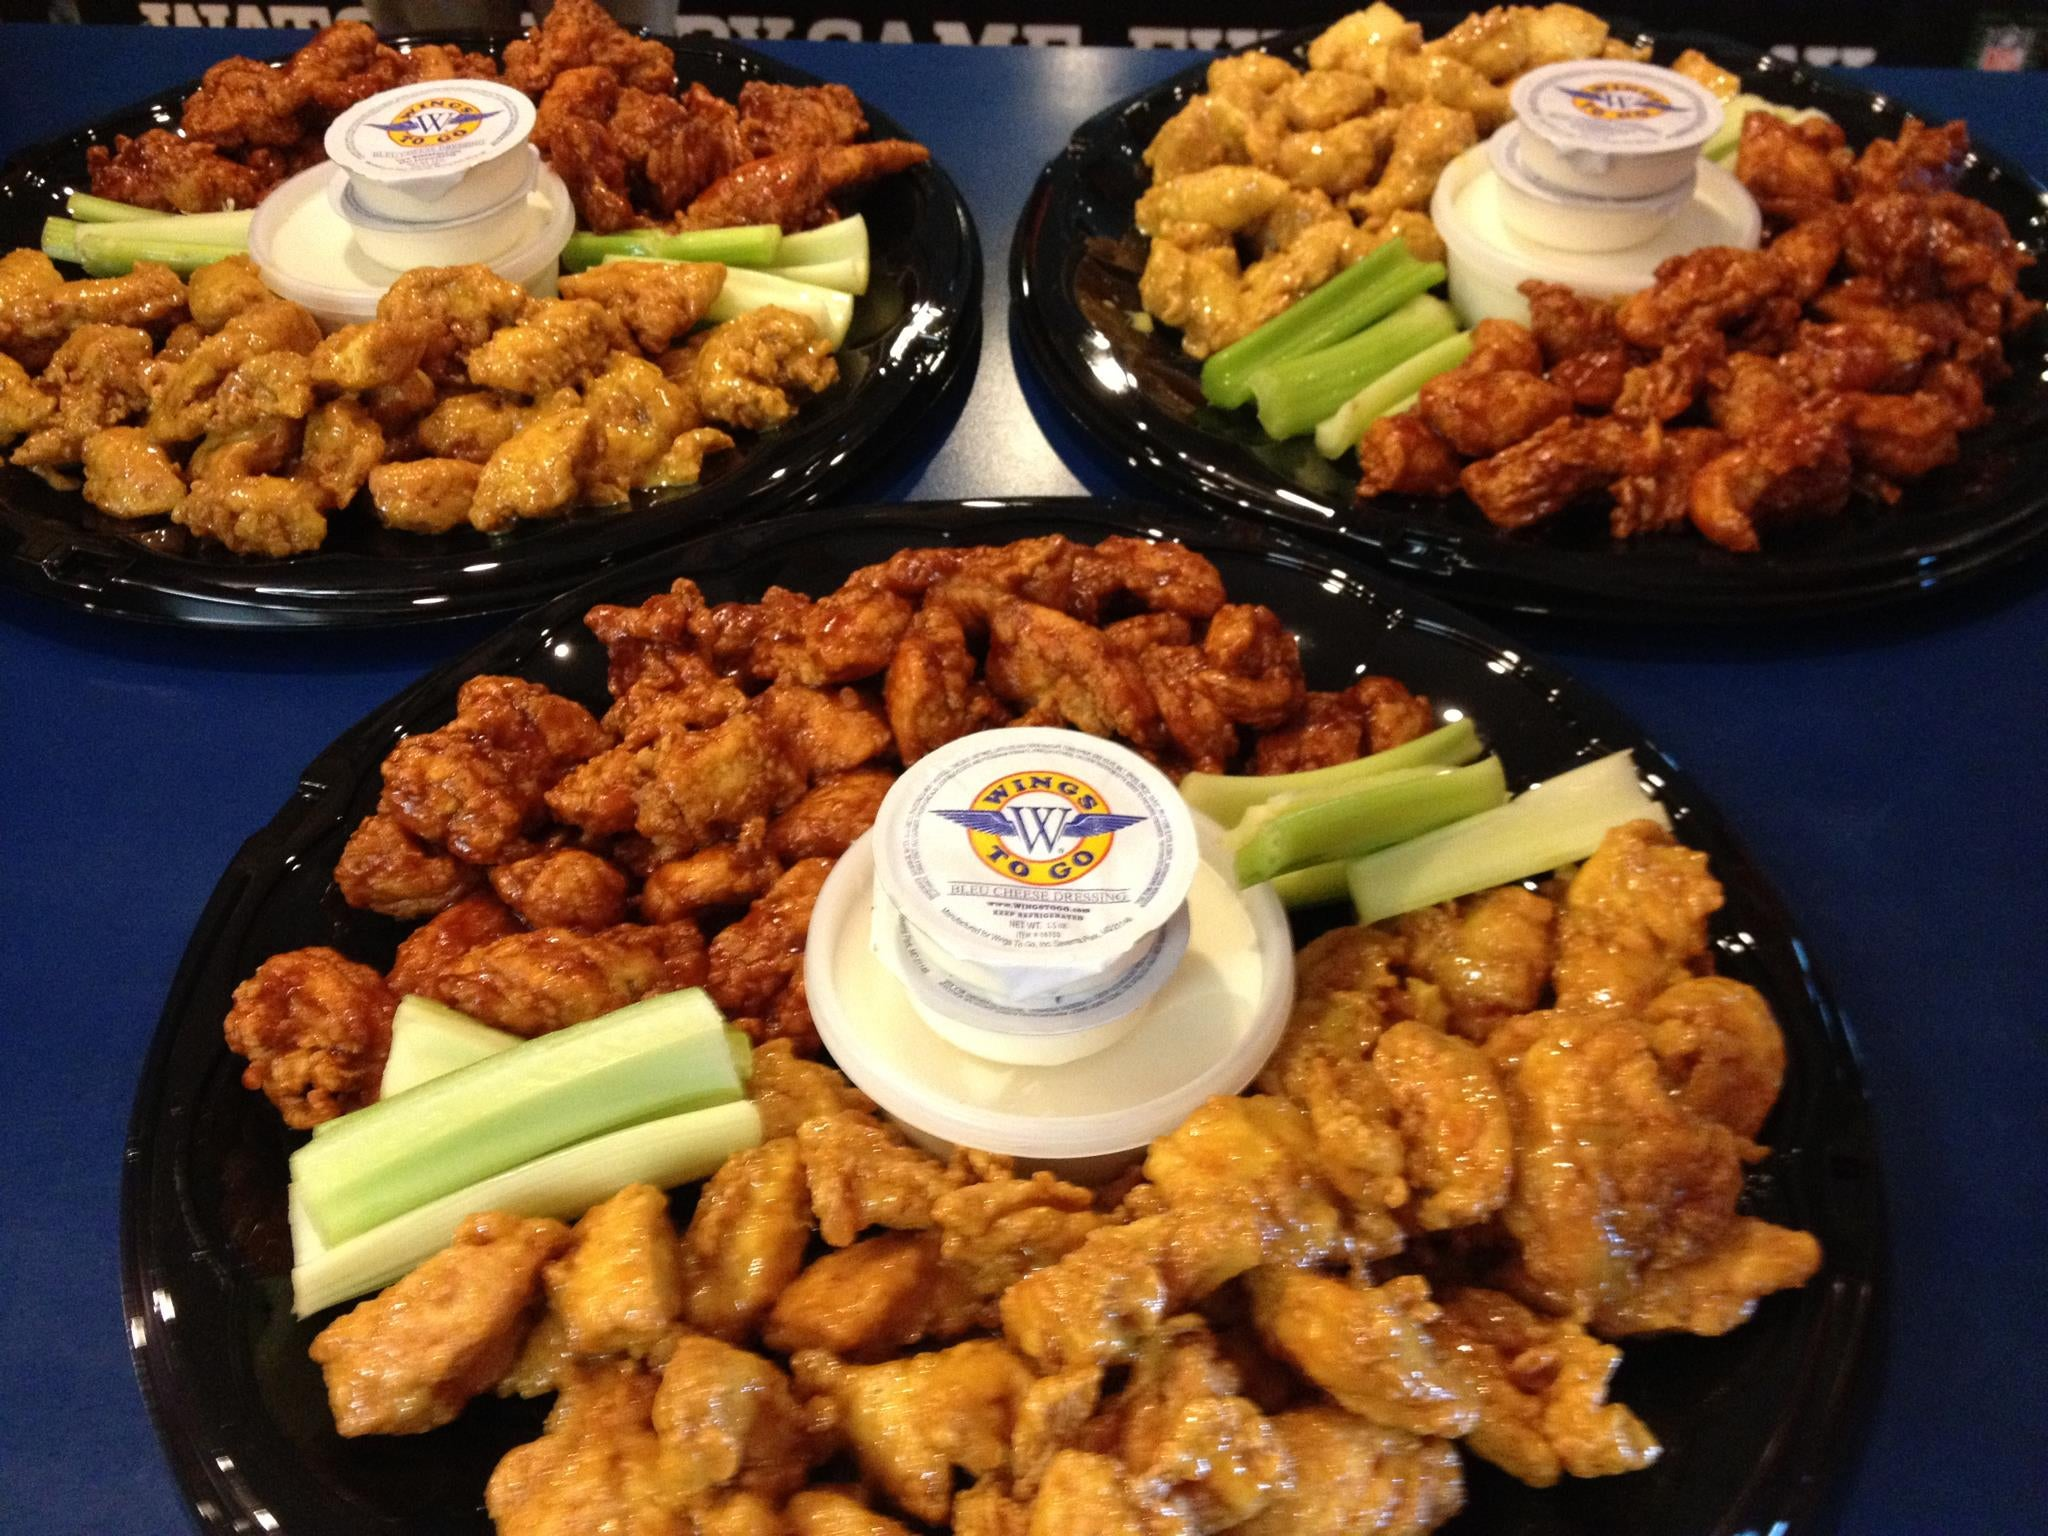 WINGS TO GO,